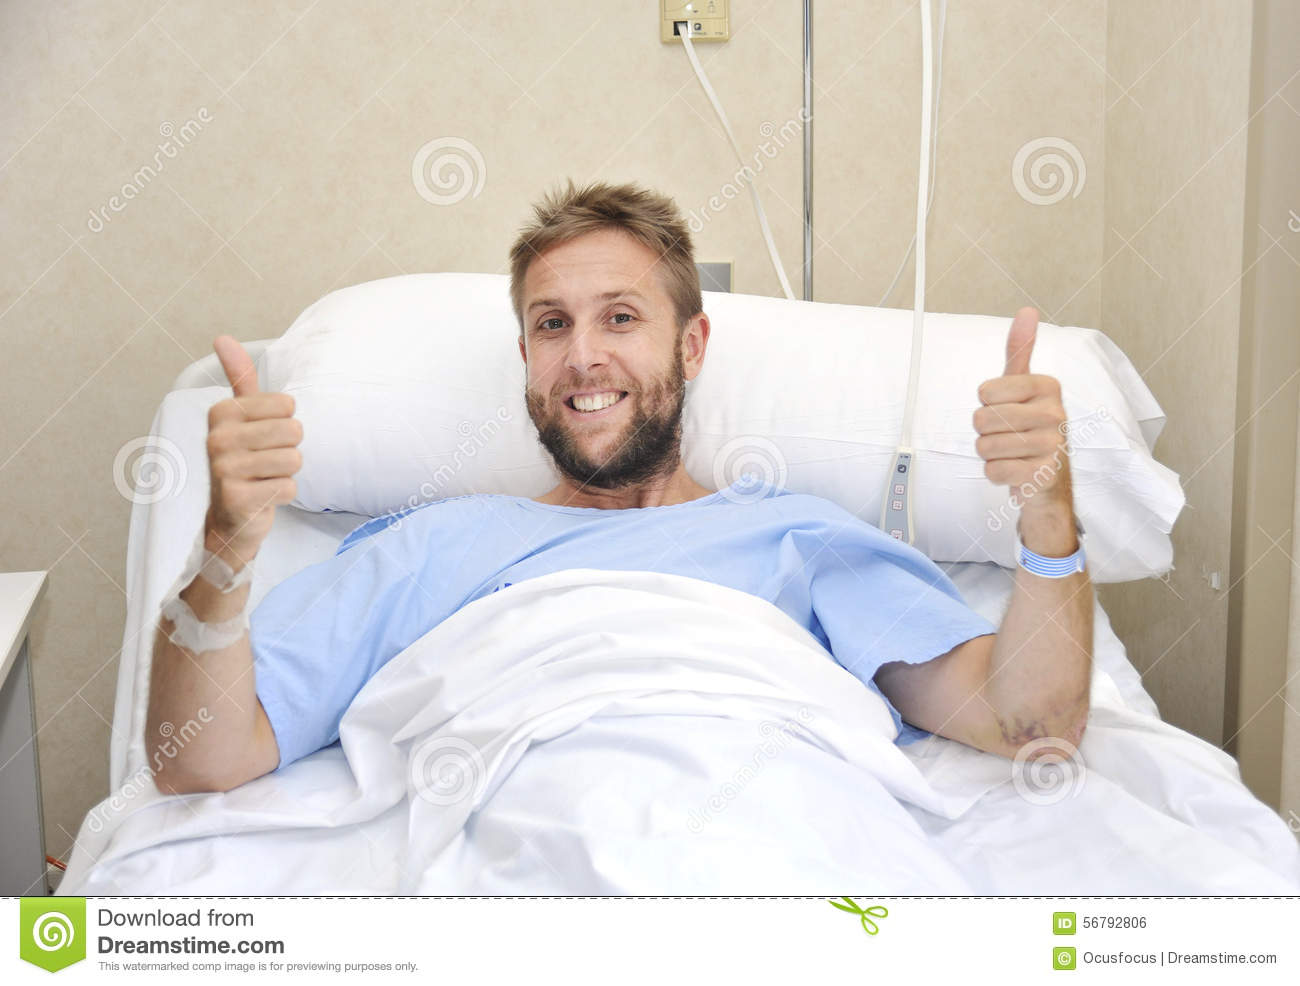 young american man lying in bed at hospital room sick or ill but giving thumbs up smiling happy patient hospital bed clipart boy in hospital bed clipart